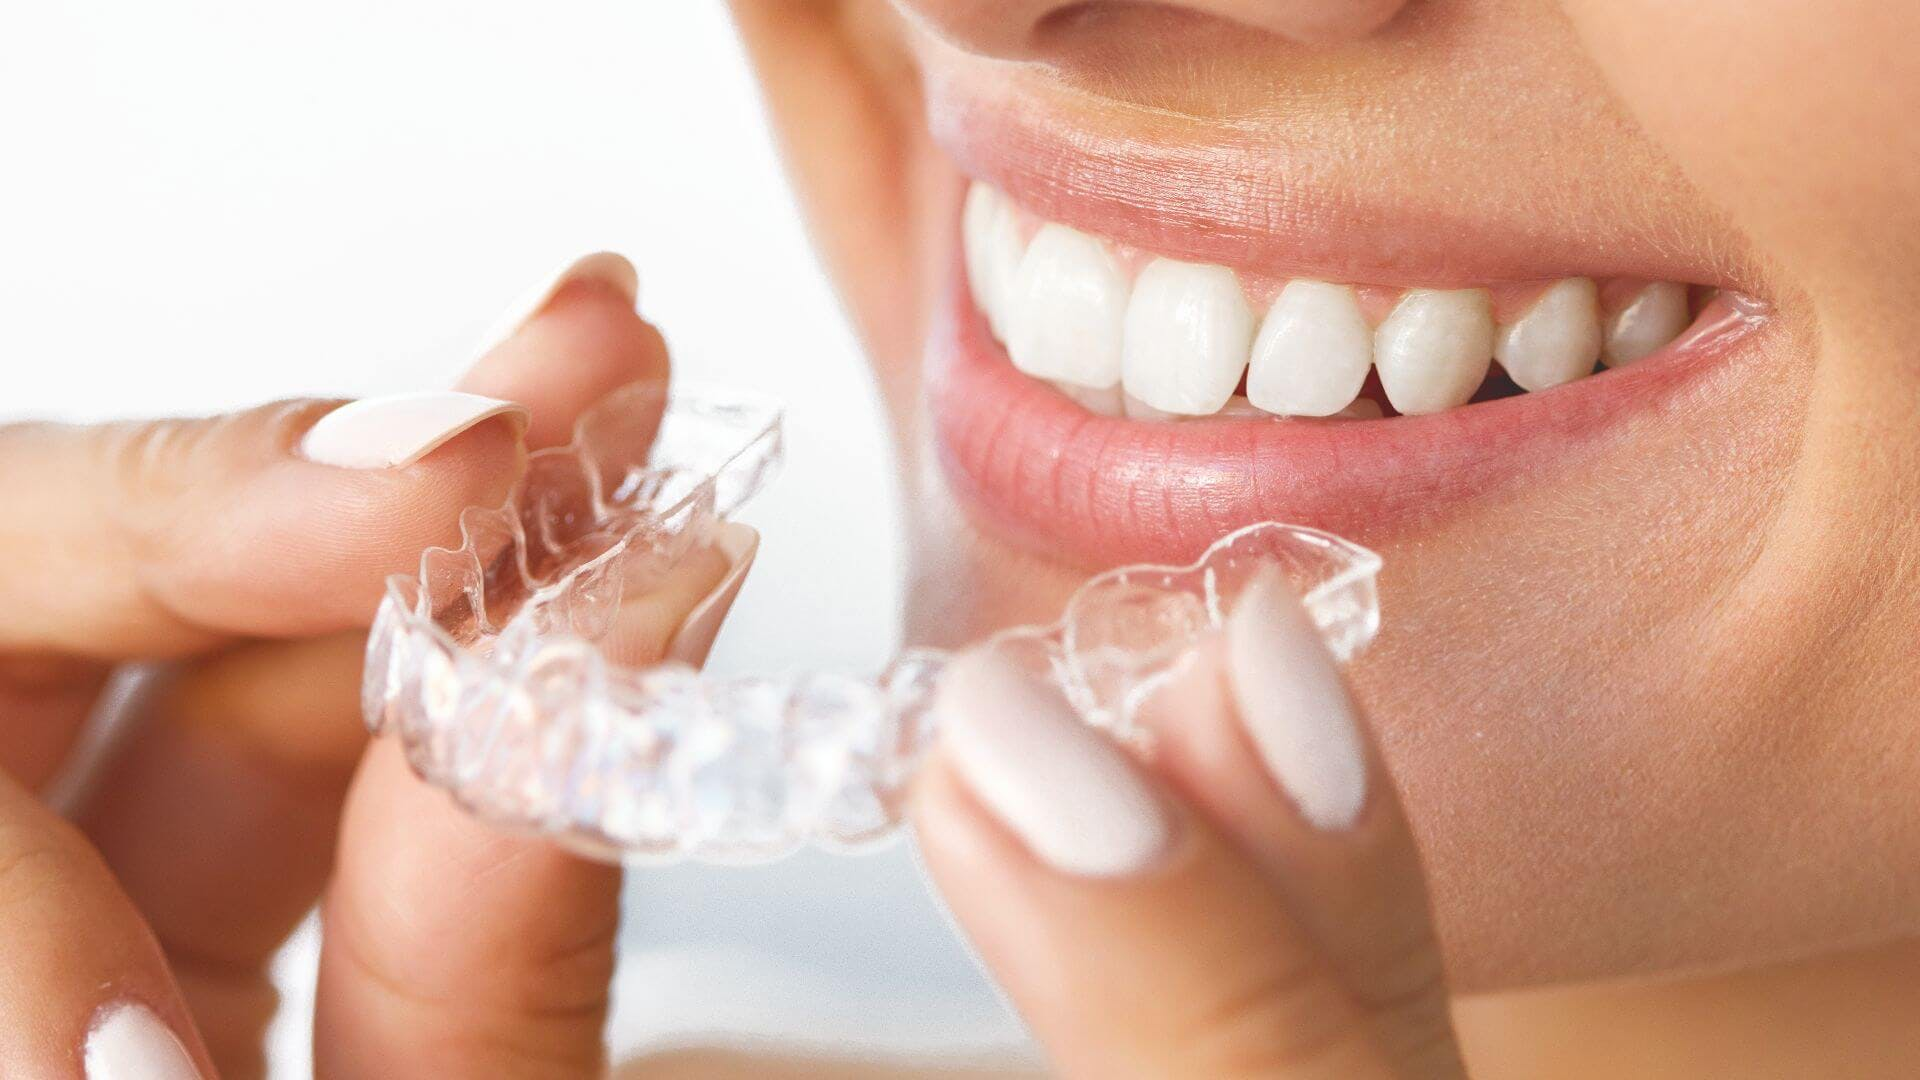 Woman putting retainer in her mouth